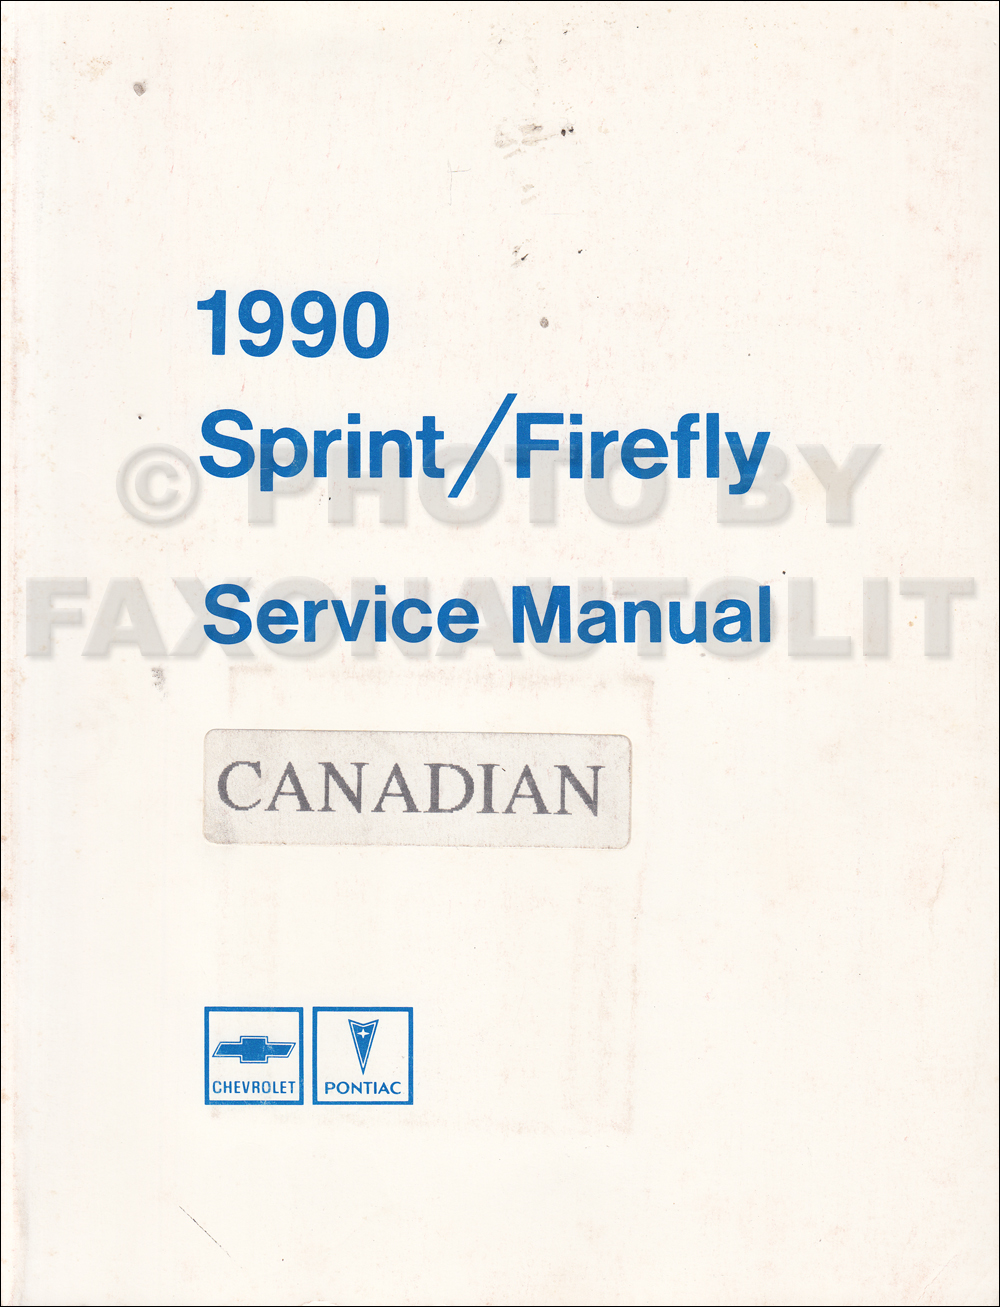 1990 Pontiac Firefly Chevy Sprint Repair Shop Manual Original Canadian